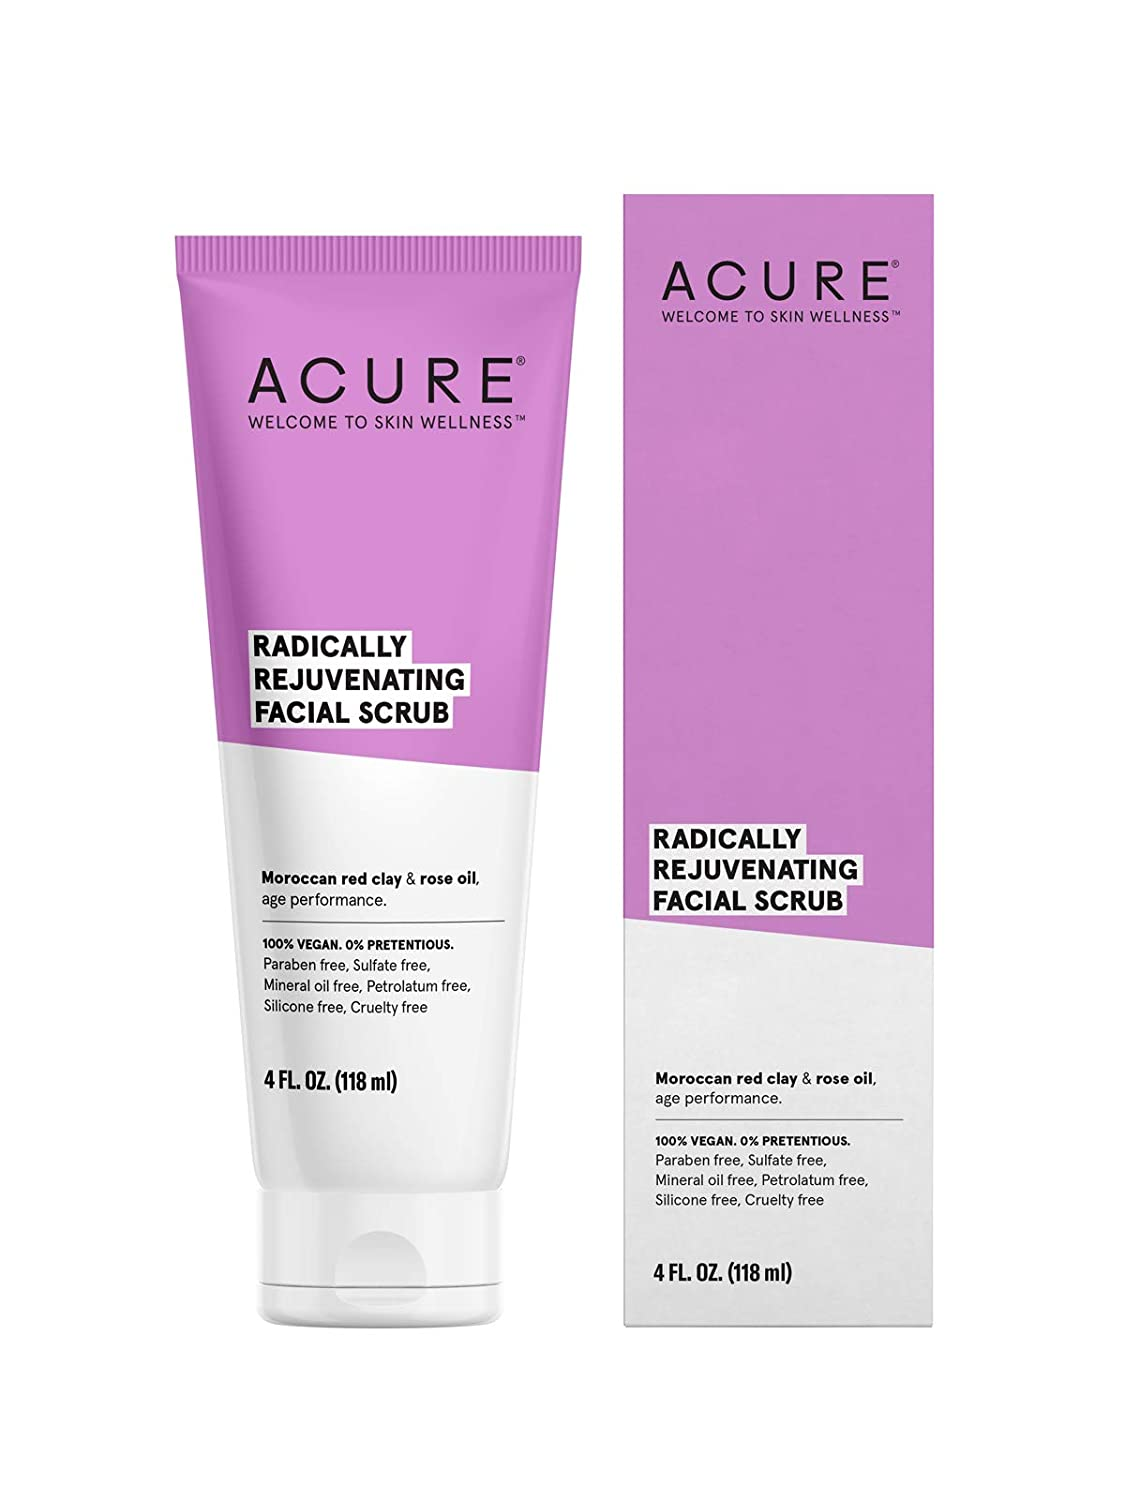 ACURE Radically Rejuvenating Facial Scrub | 100% Vegan | Provides Anti-Aging Support | Moroccan Red Clay & Rose Oil - Gently exfoliates and Softens | 4 Fl Oz